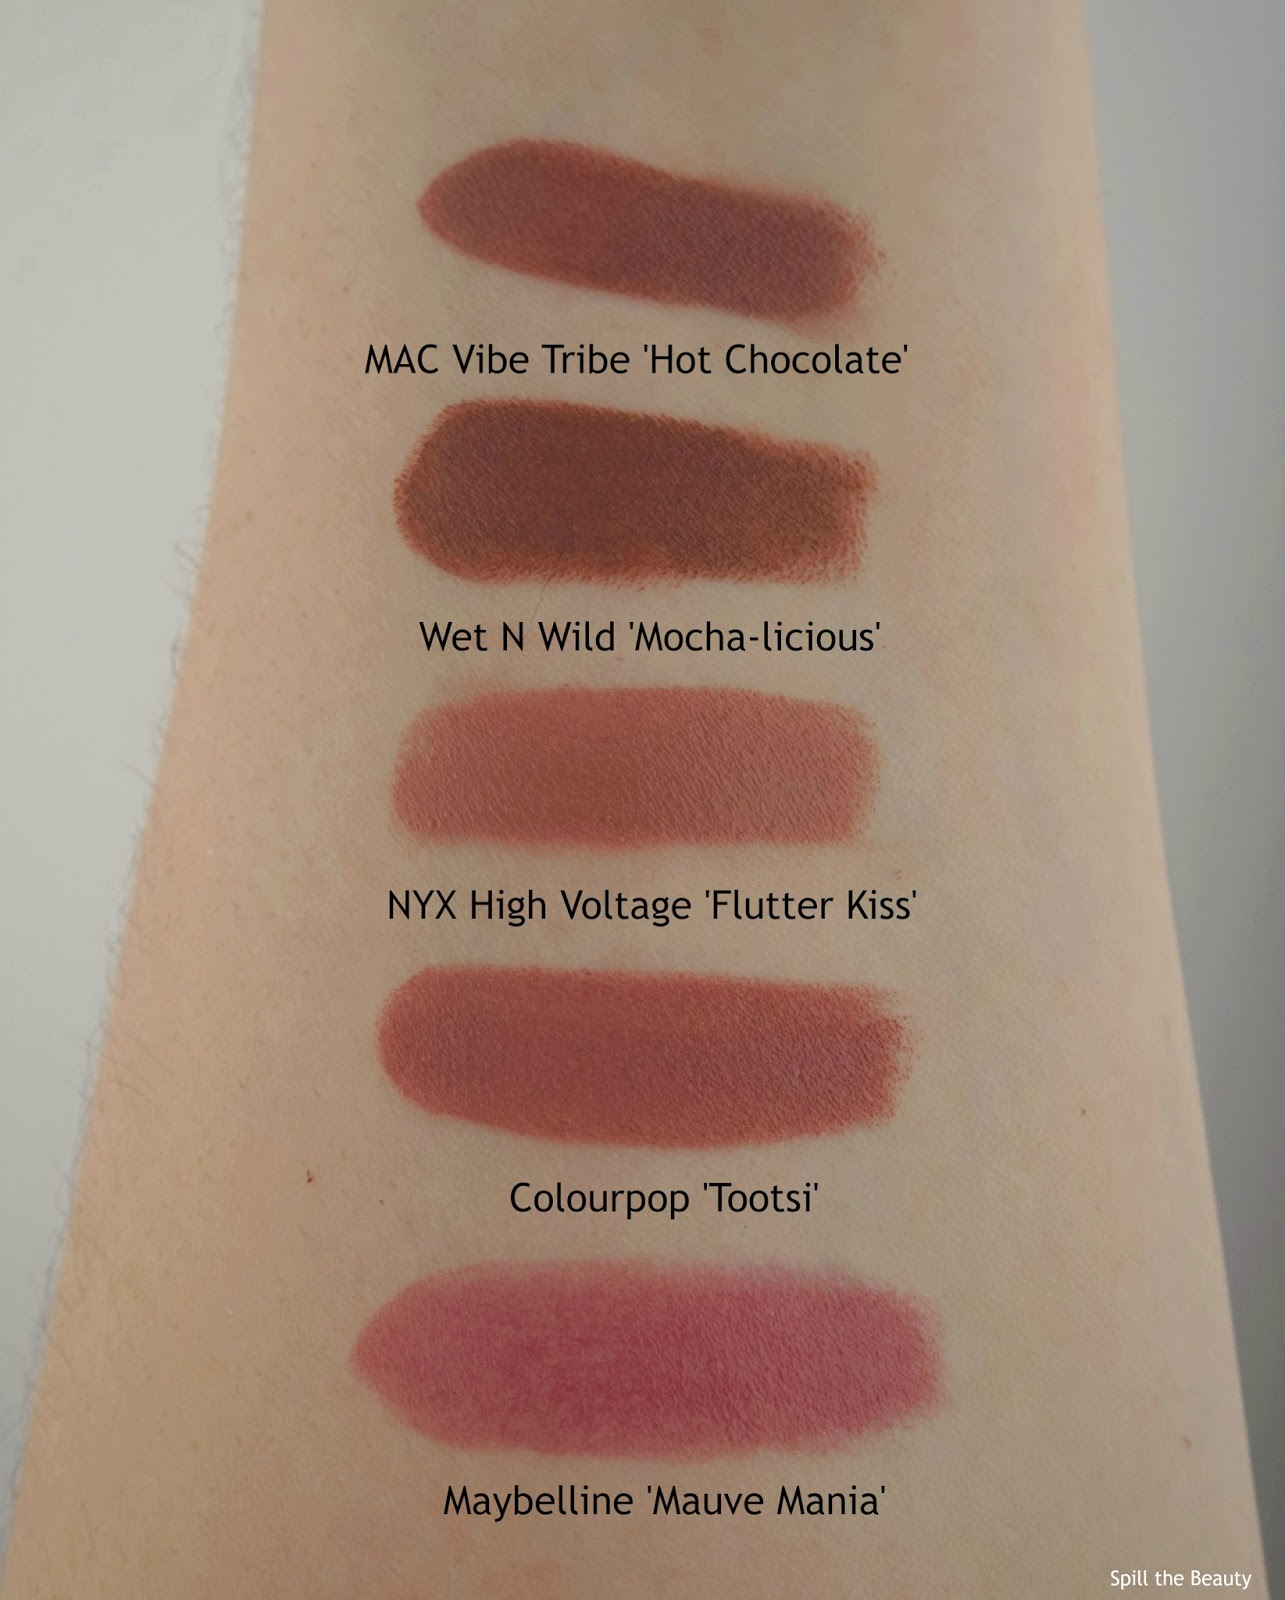 mac vibe tribe hot chocolate dupe drugstore maybelline wet n wild nyx colourpop